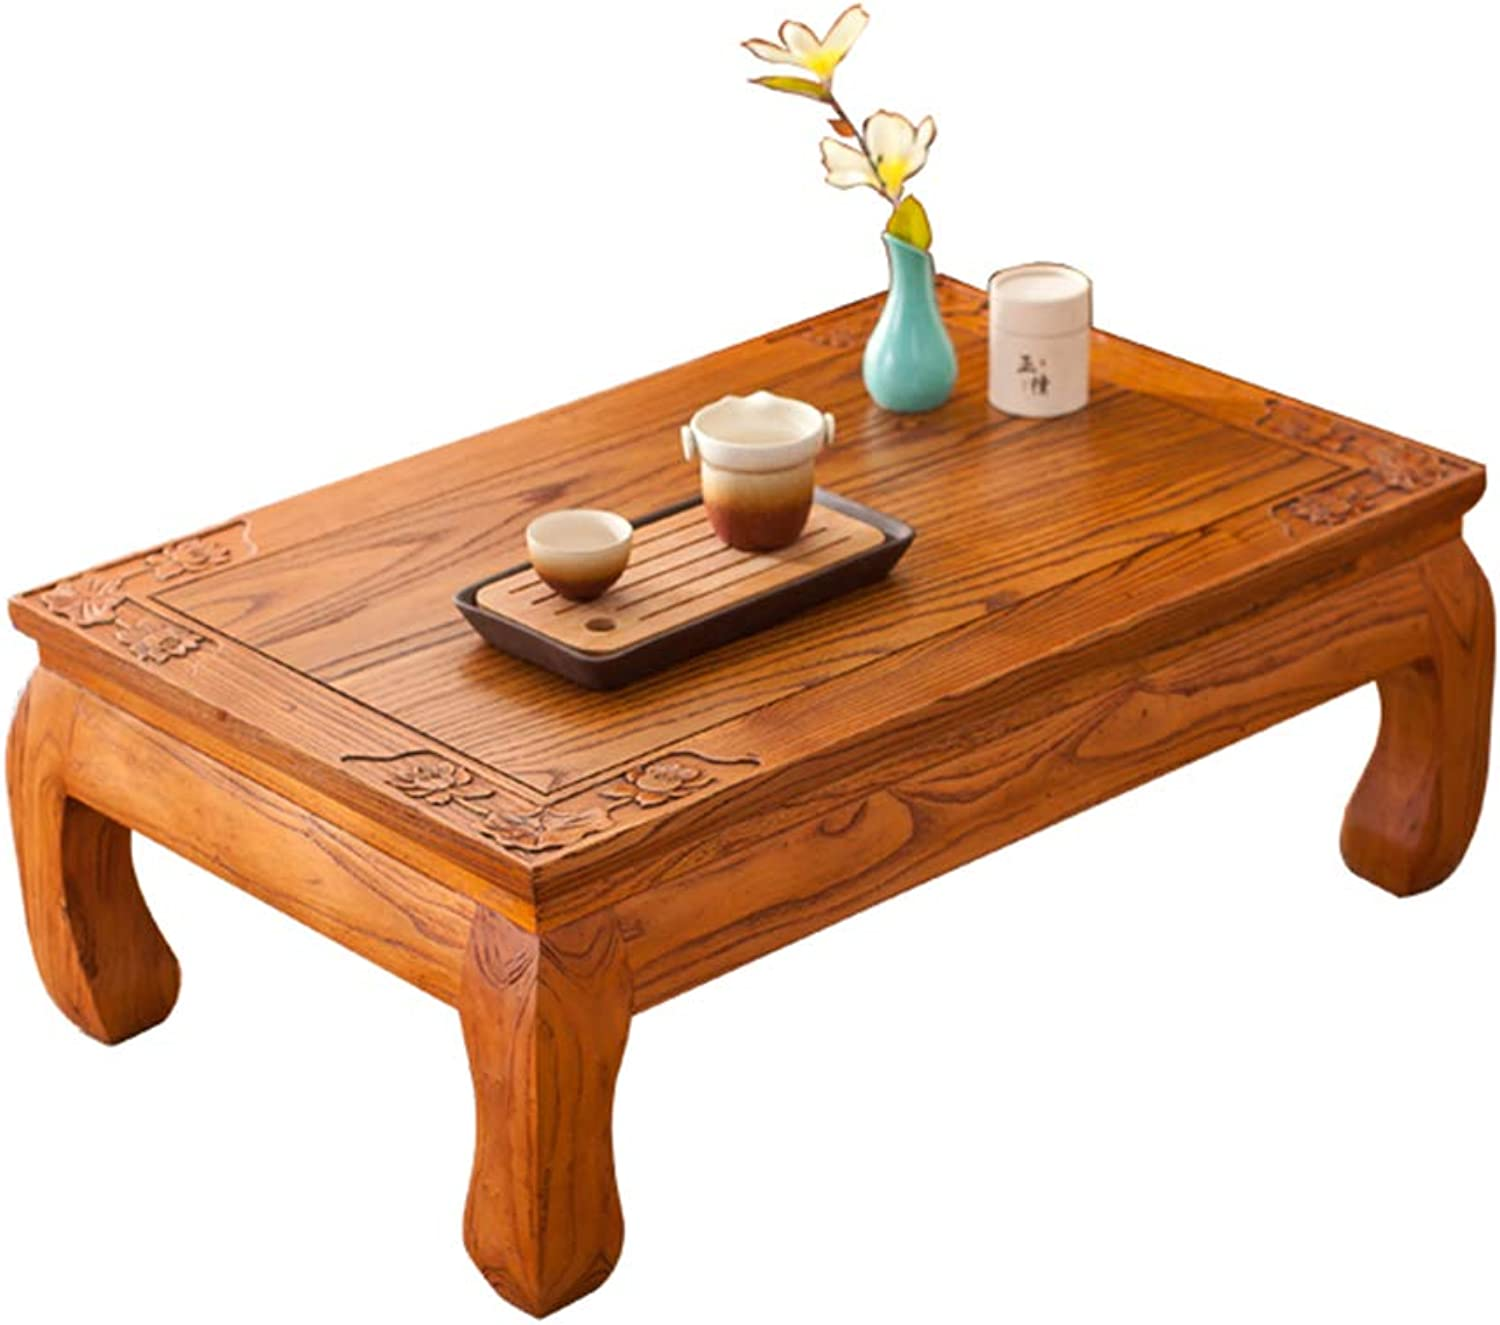 Coffee Tables Coffee Table Japanese Tatami Coffee Table Bay Window Small Desk Balcony Small Coffee Table Living Room Brown Modern Coffee Tables Casual Low Table (color   Brown, Size   50  40  25cm)